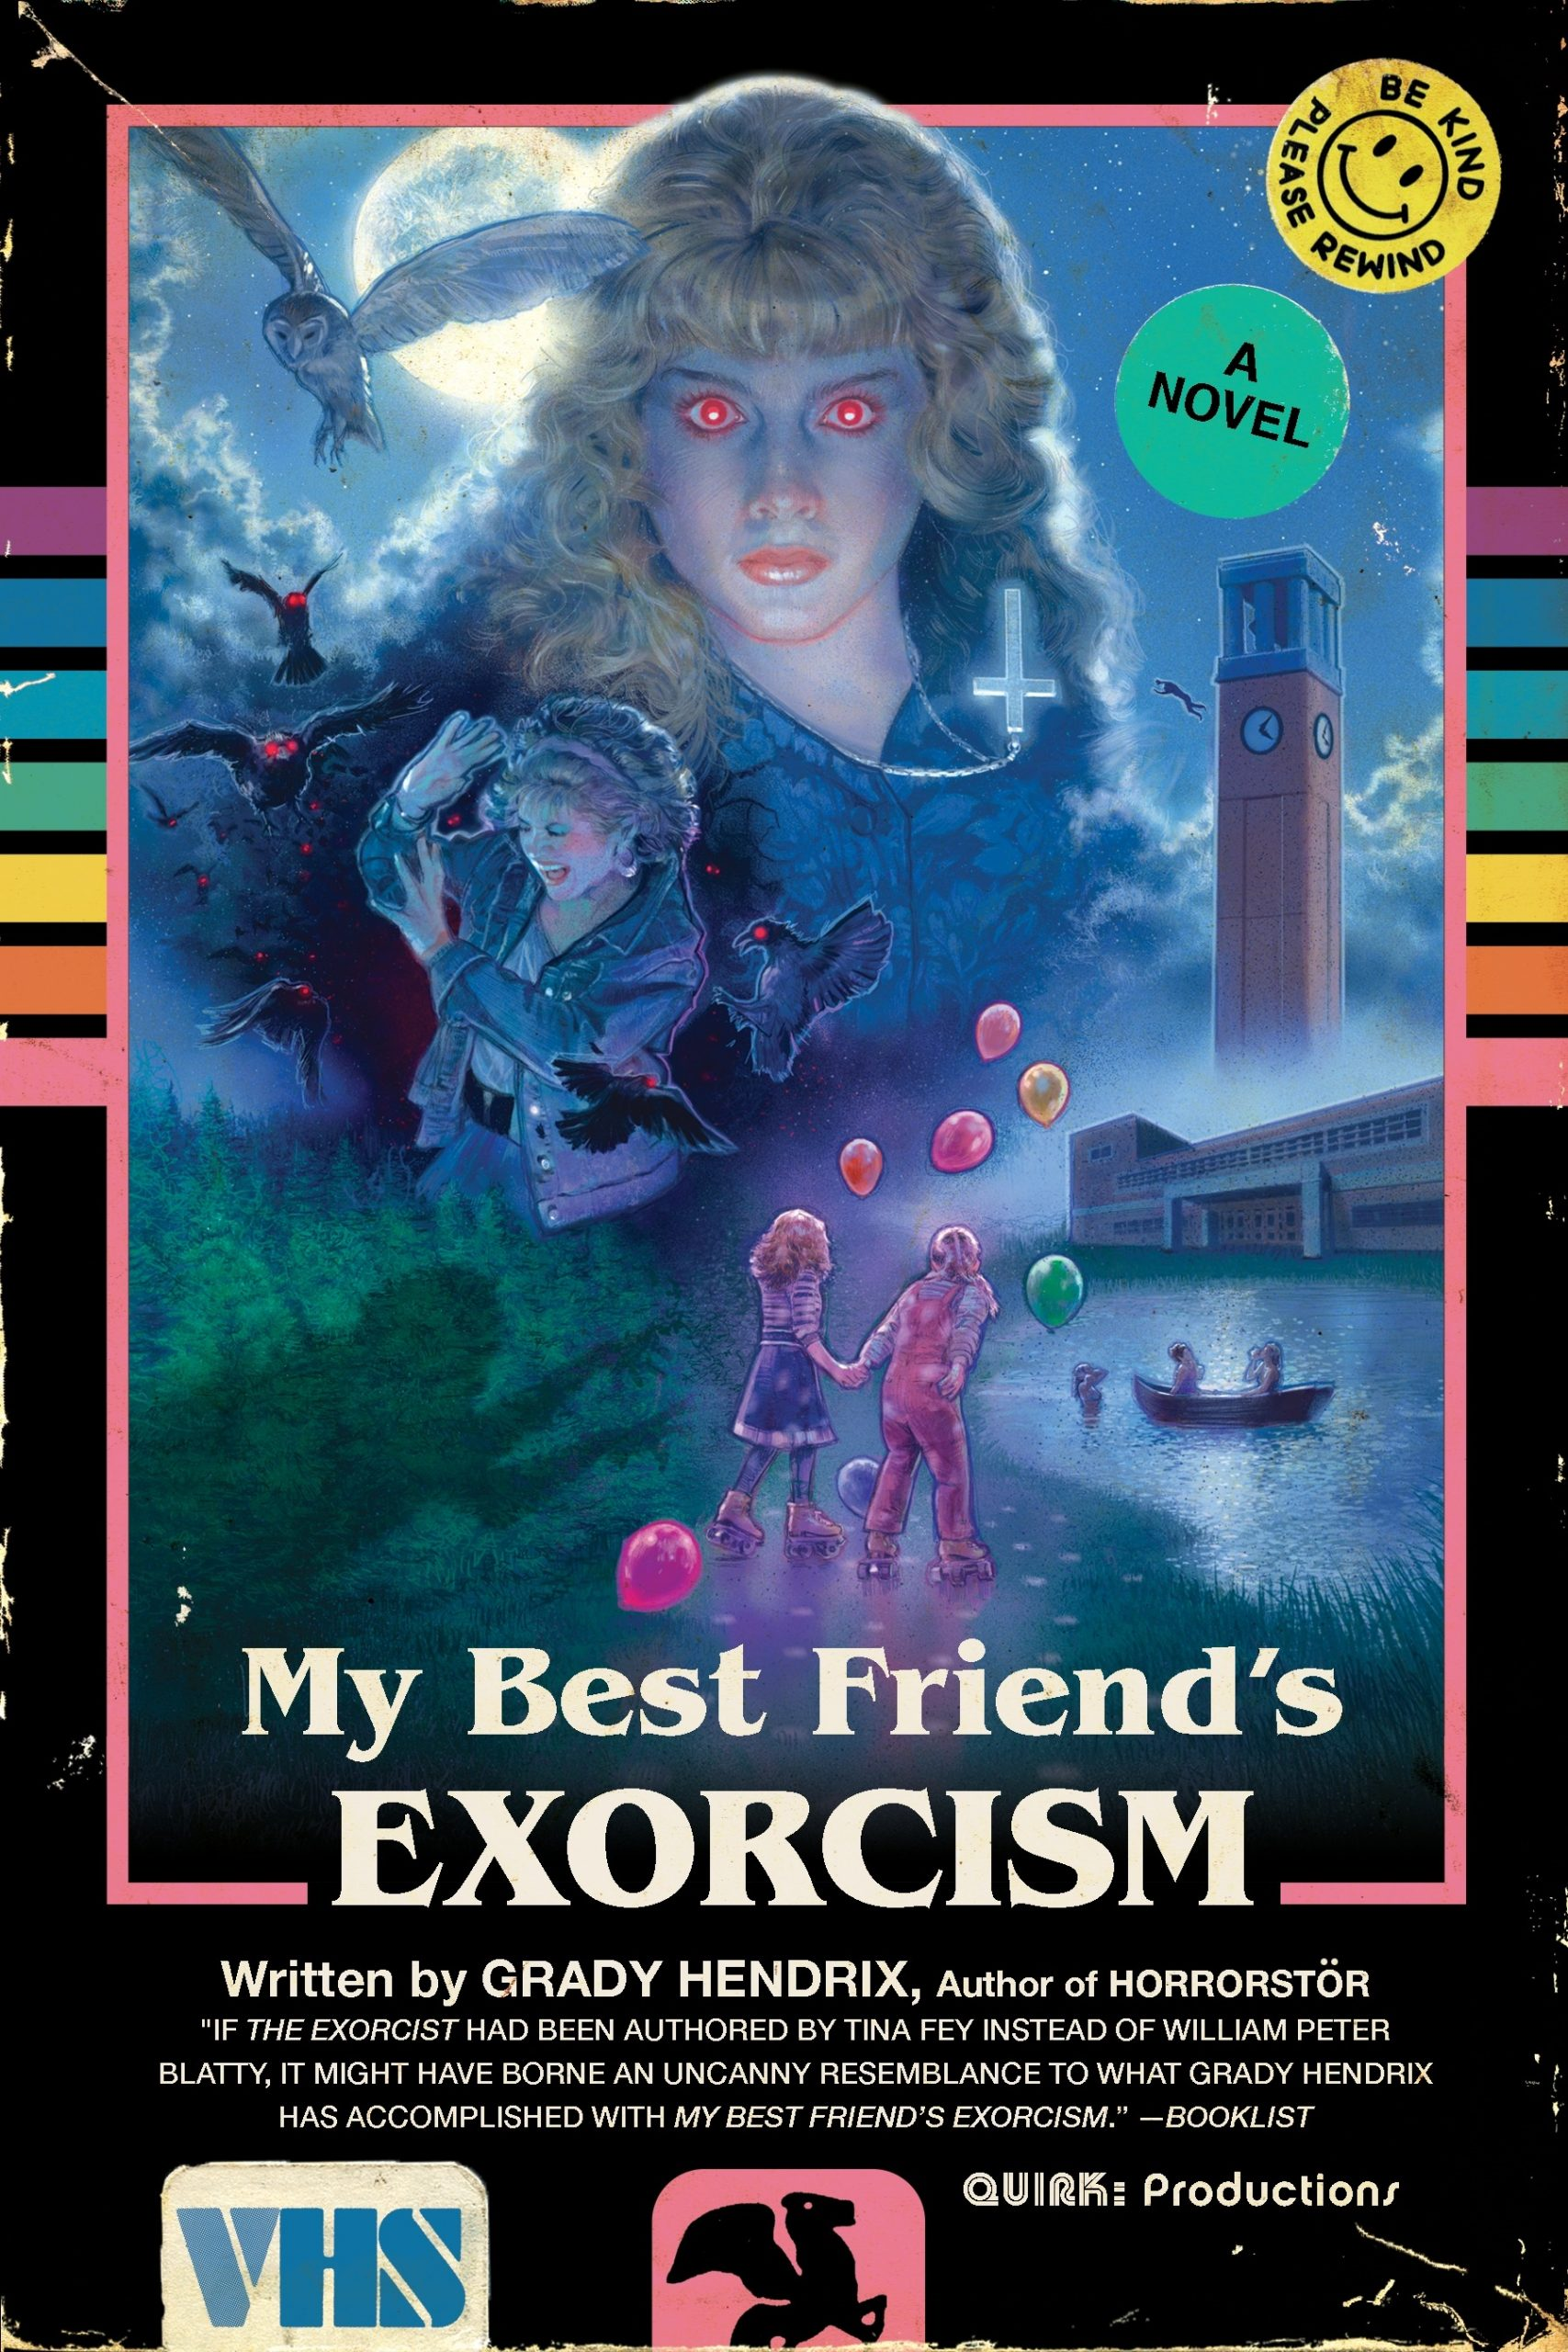 Grady Hendrix's horror novel 'My Best Friend's Exorcism' to get film adaptation